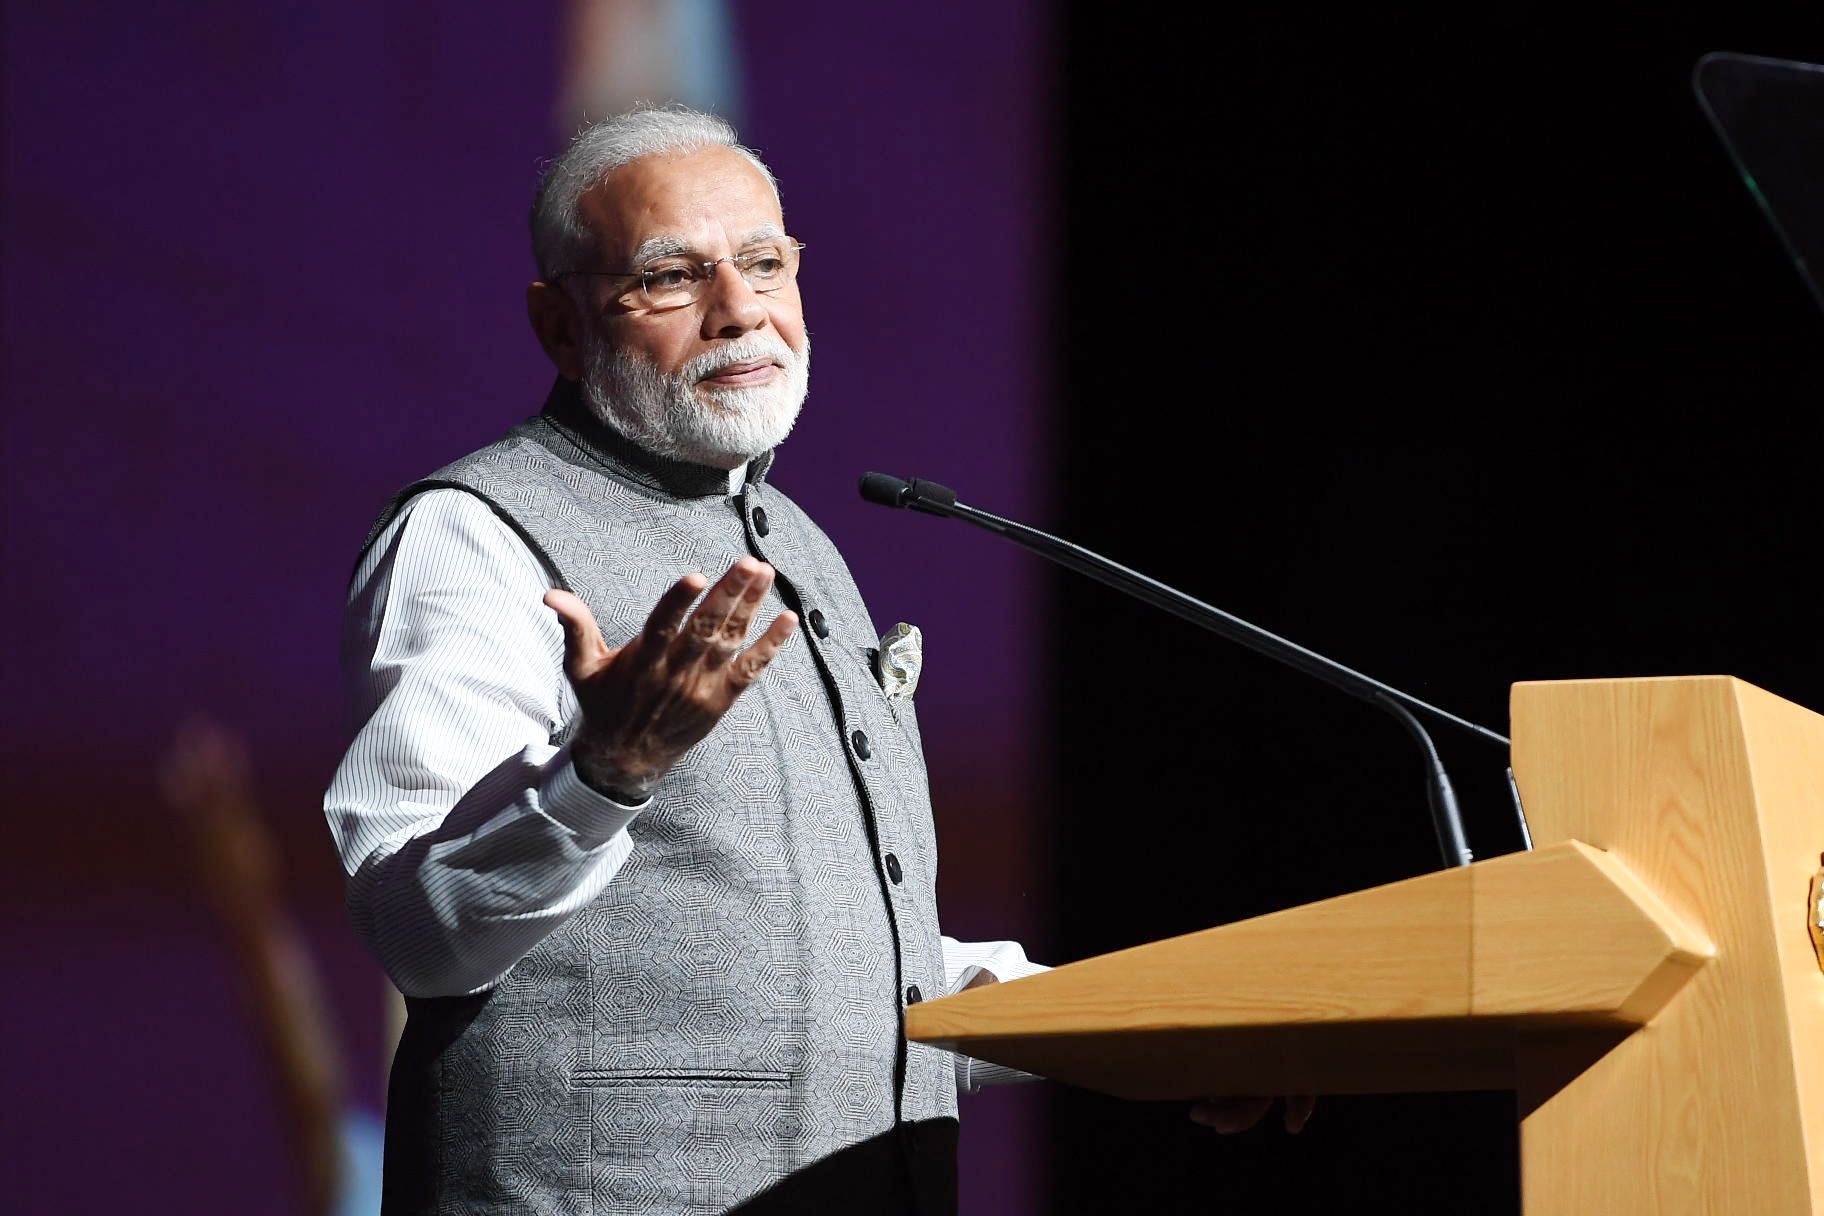 The Prime Minister, Shri Narendra Modi addressing at the Business and Community event, at Marina Bay Sands Convention Centre, in Singapore on May 31, 2018.